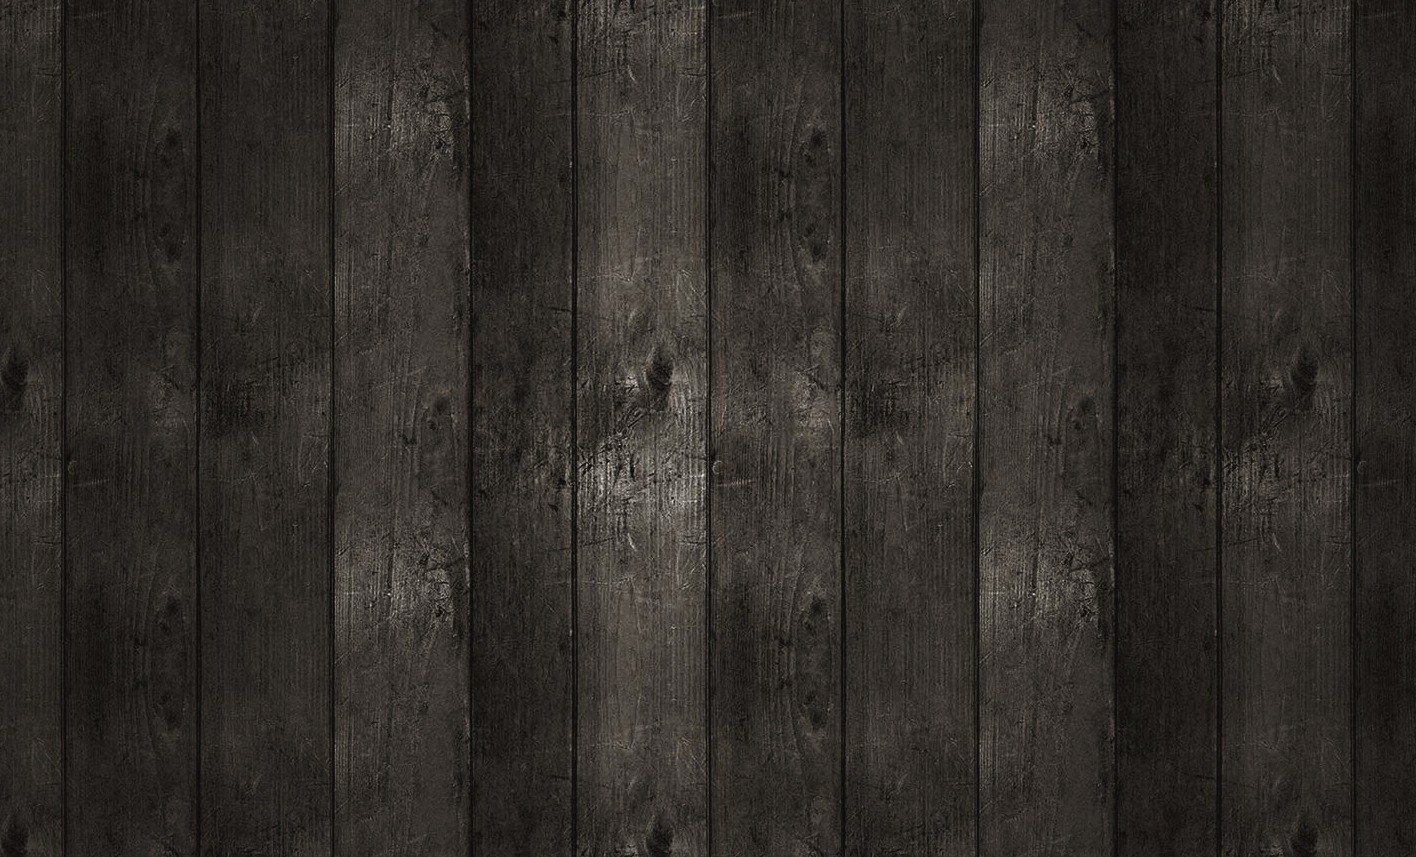 Wallpapers rustic wood backgrounds for g 673663   PNG Images   PNGio 1416x857